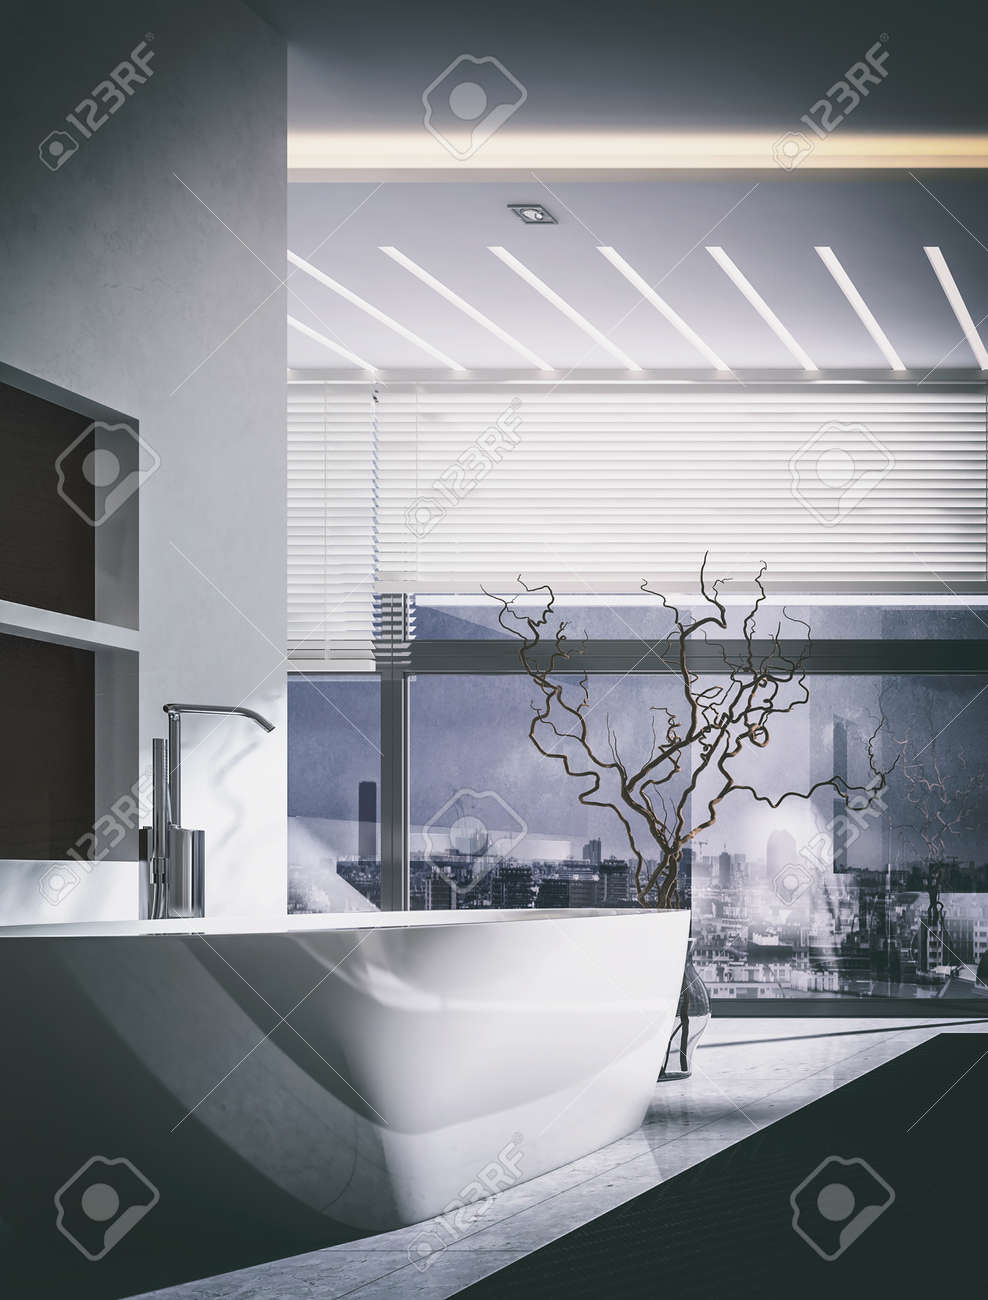 3d rendering interior of luxury modern bathroom with large tub dried wood plant in vase